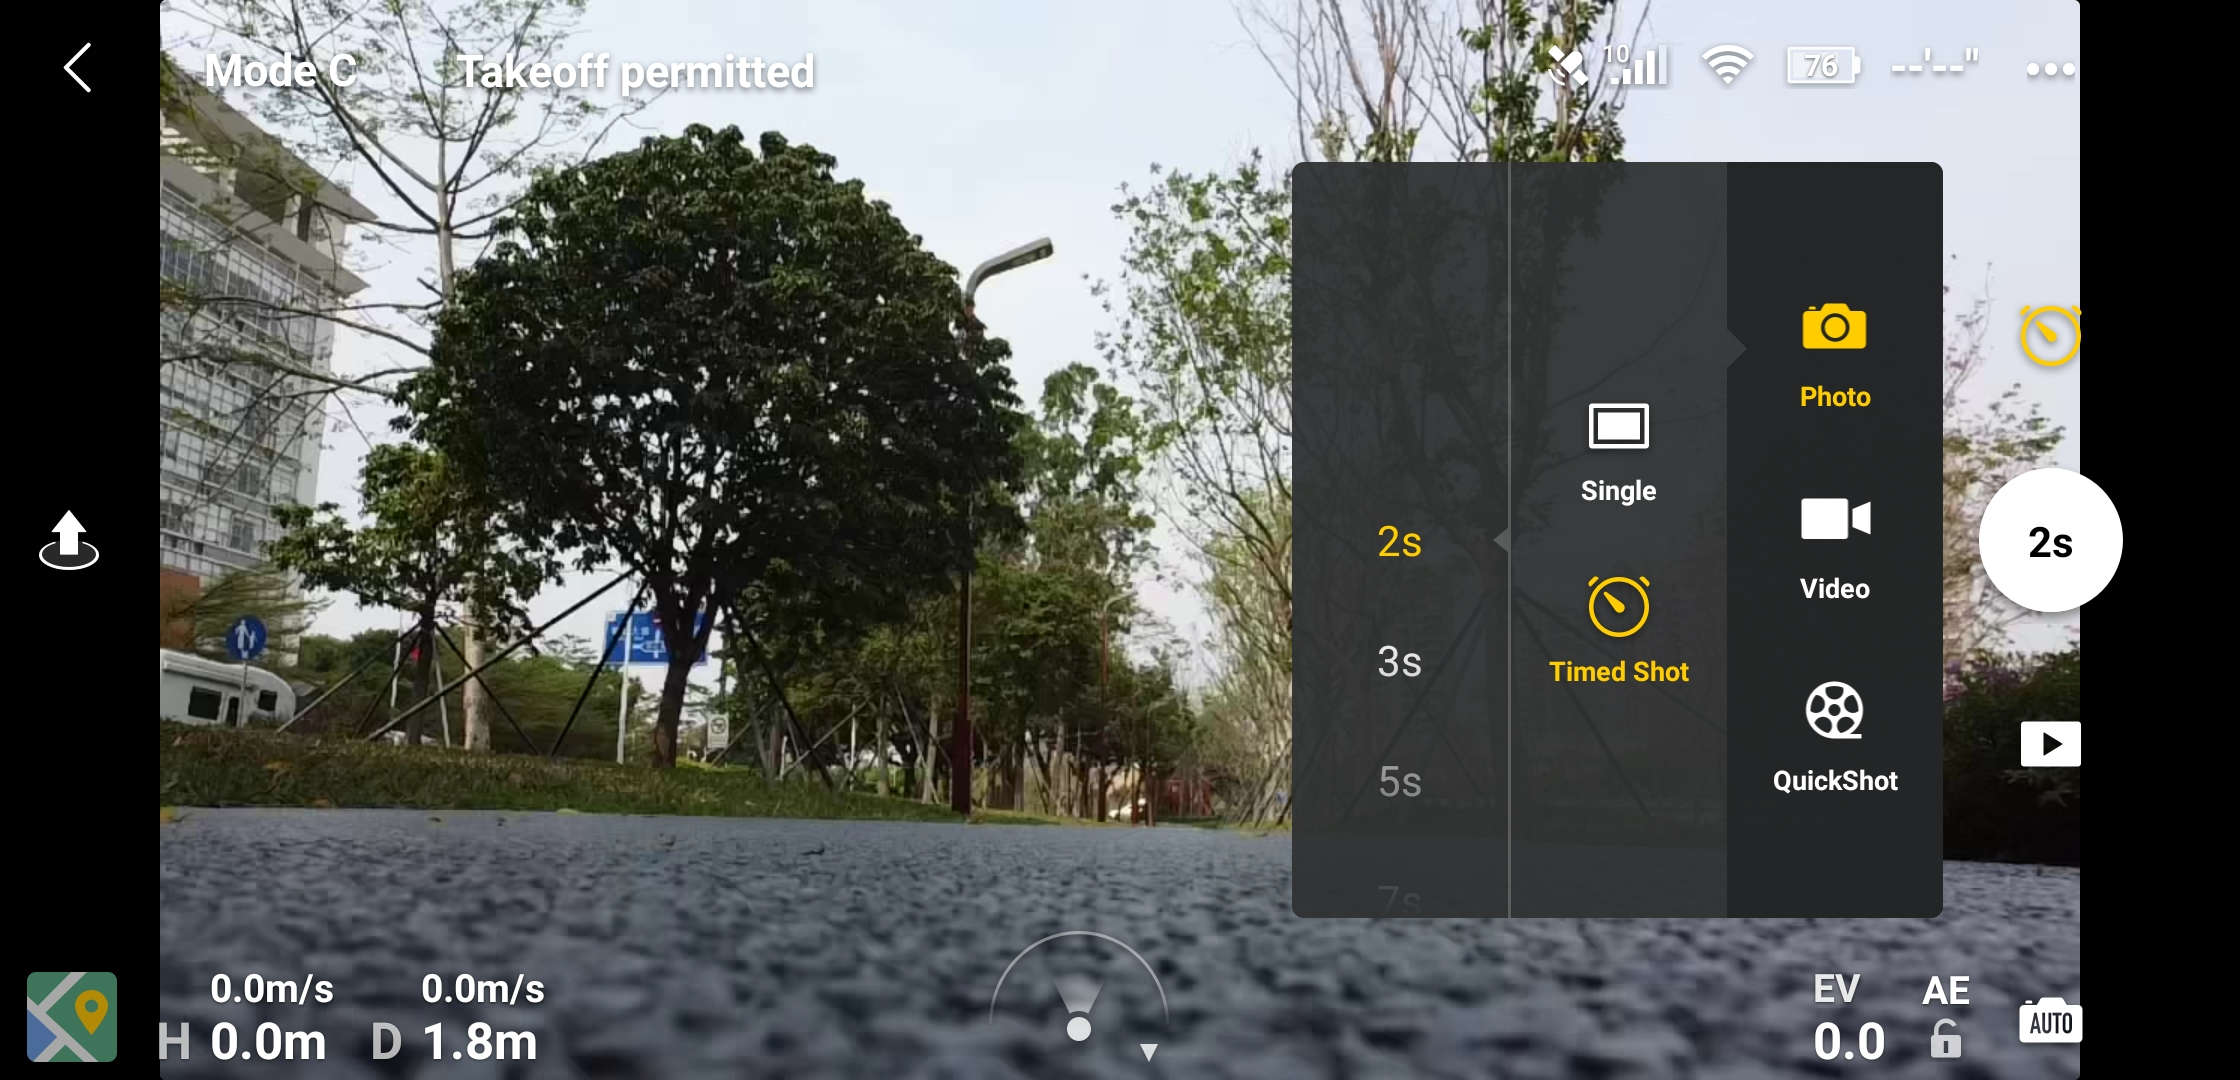 Mavic Mini Photo specs in dji pilot app